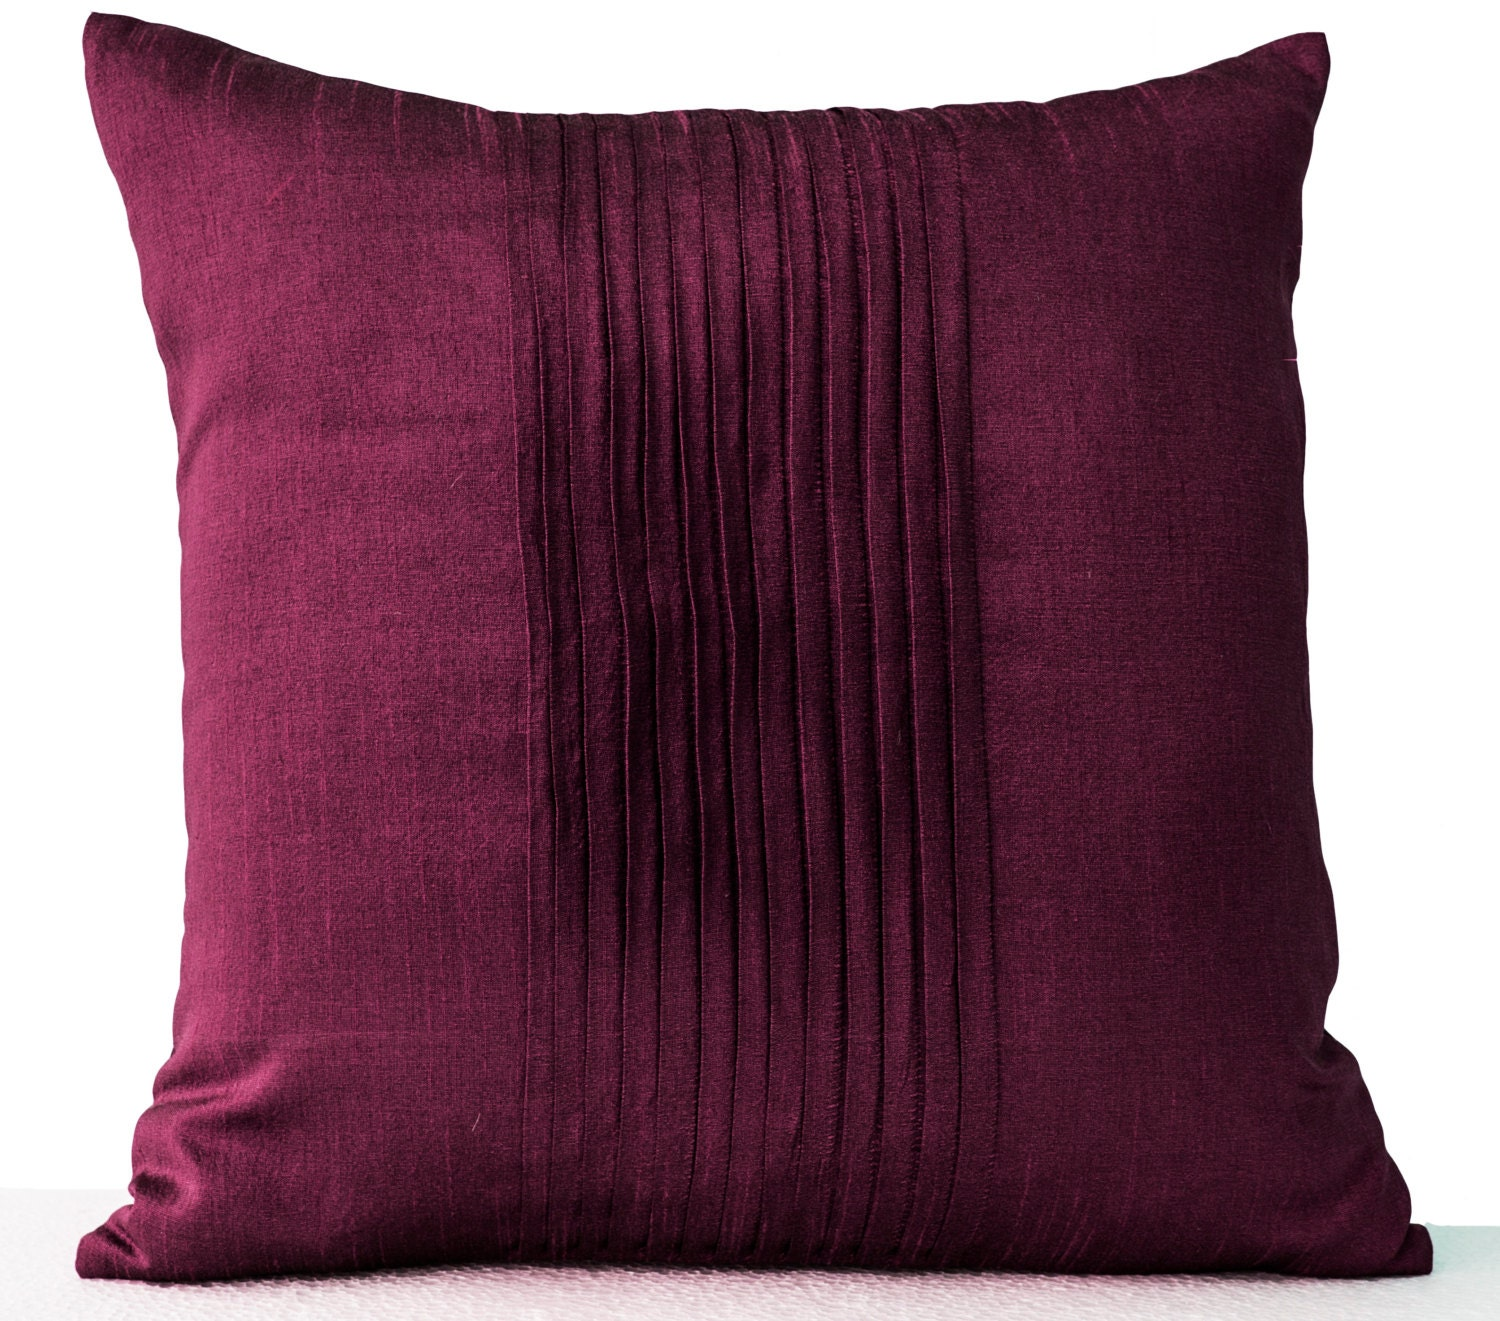 Throw Pillows With Covers : Purple Throw Pillow Cover Faux Silk Pleat Decorative Pillow